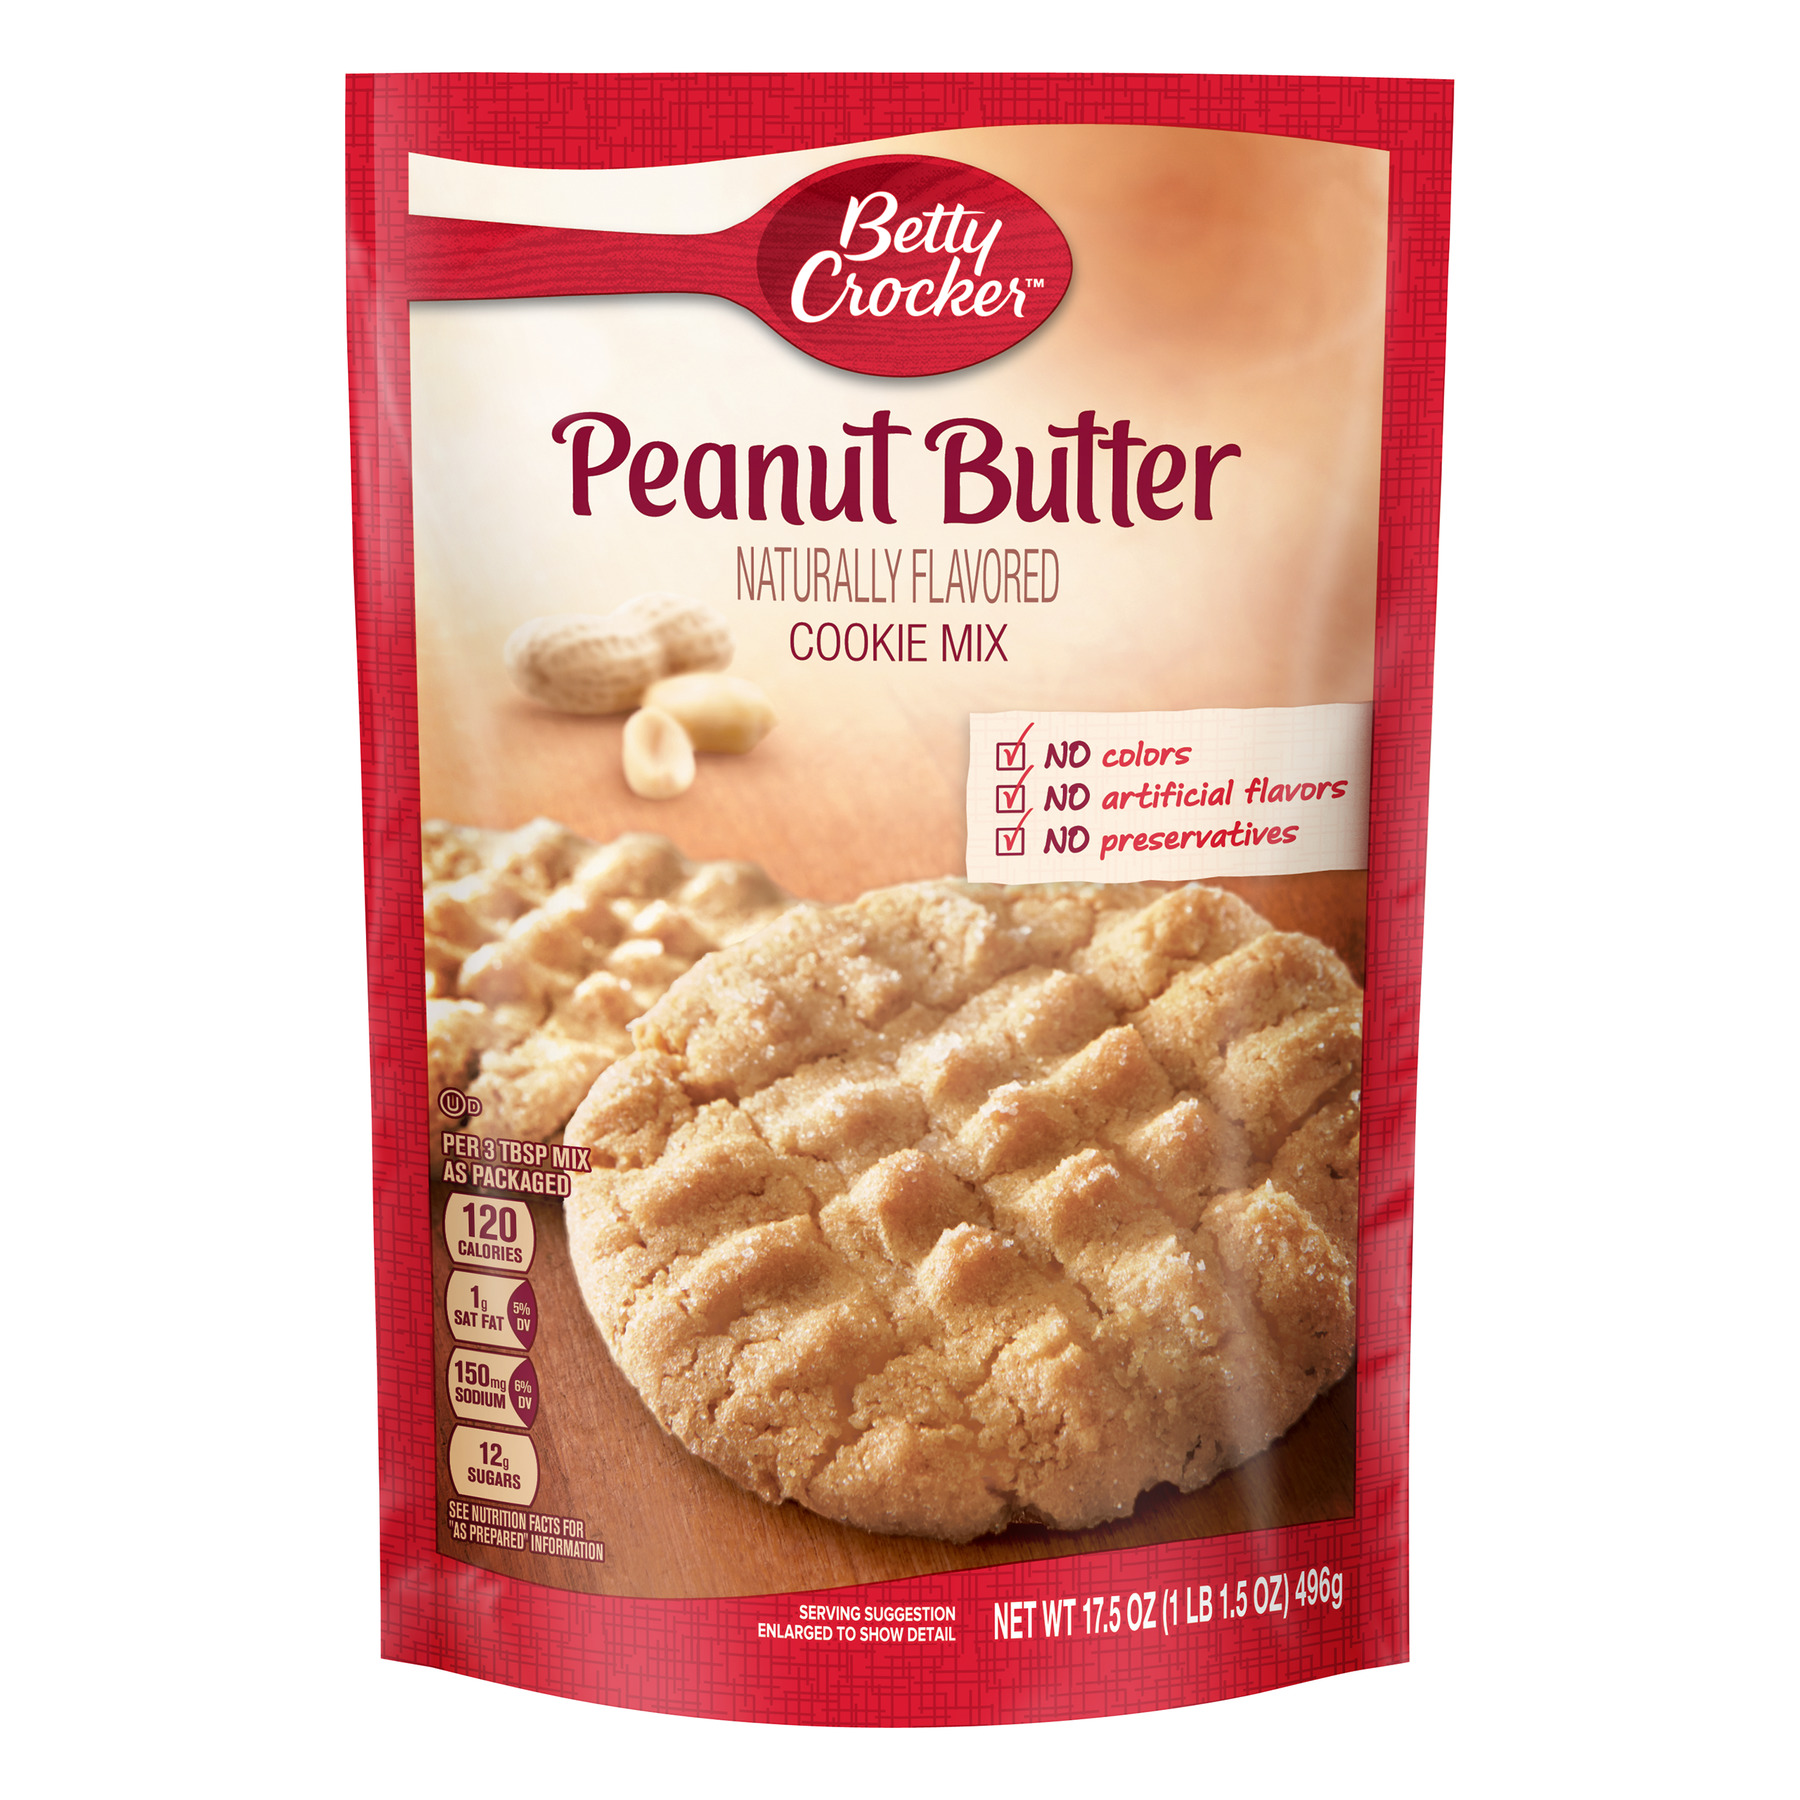 Betty Crocker Baking Mix, Peanut Butter Cookie Mix, 17.5 Oz Pouch